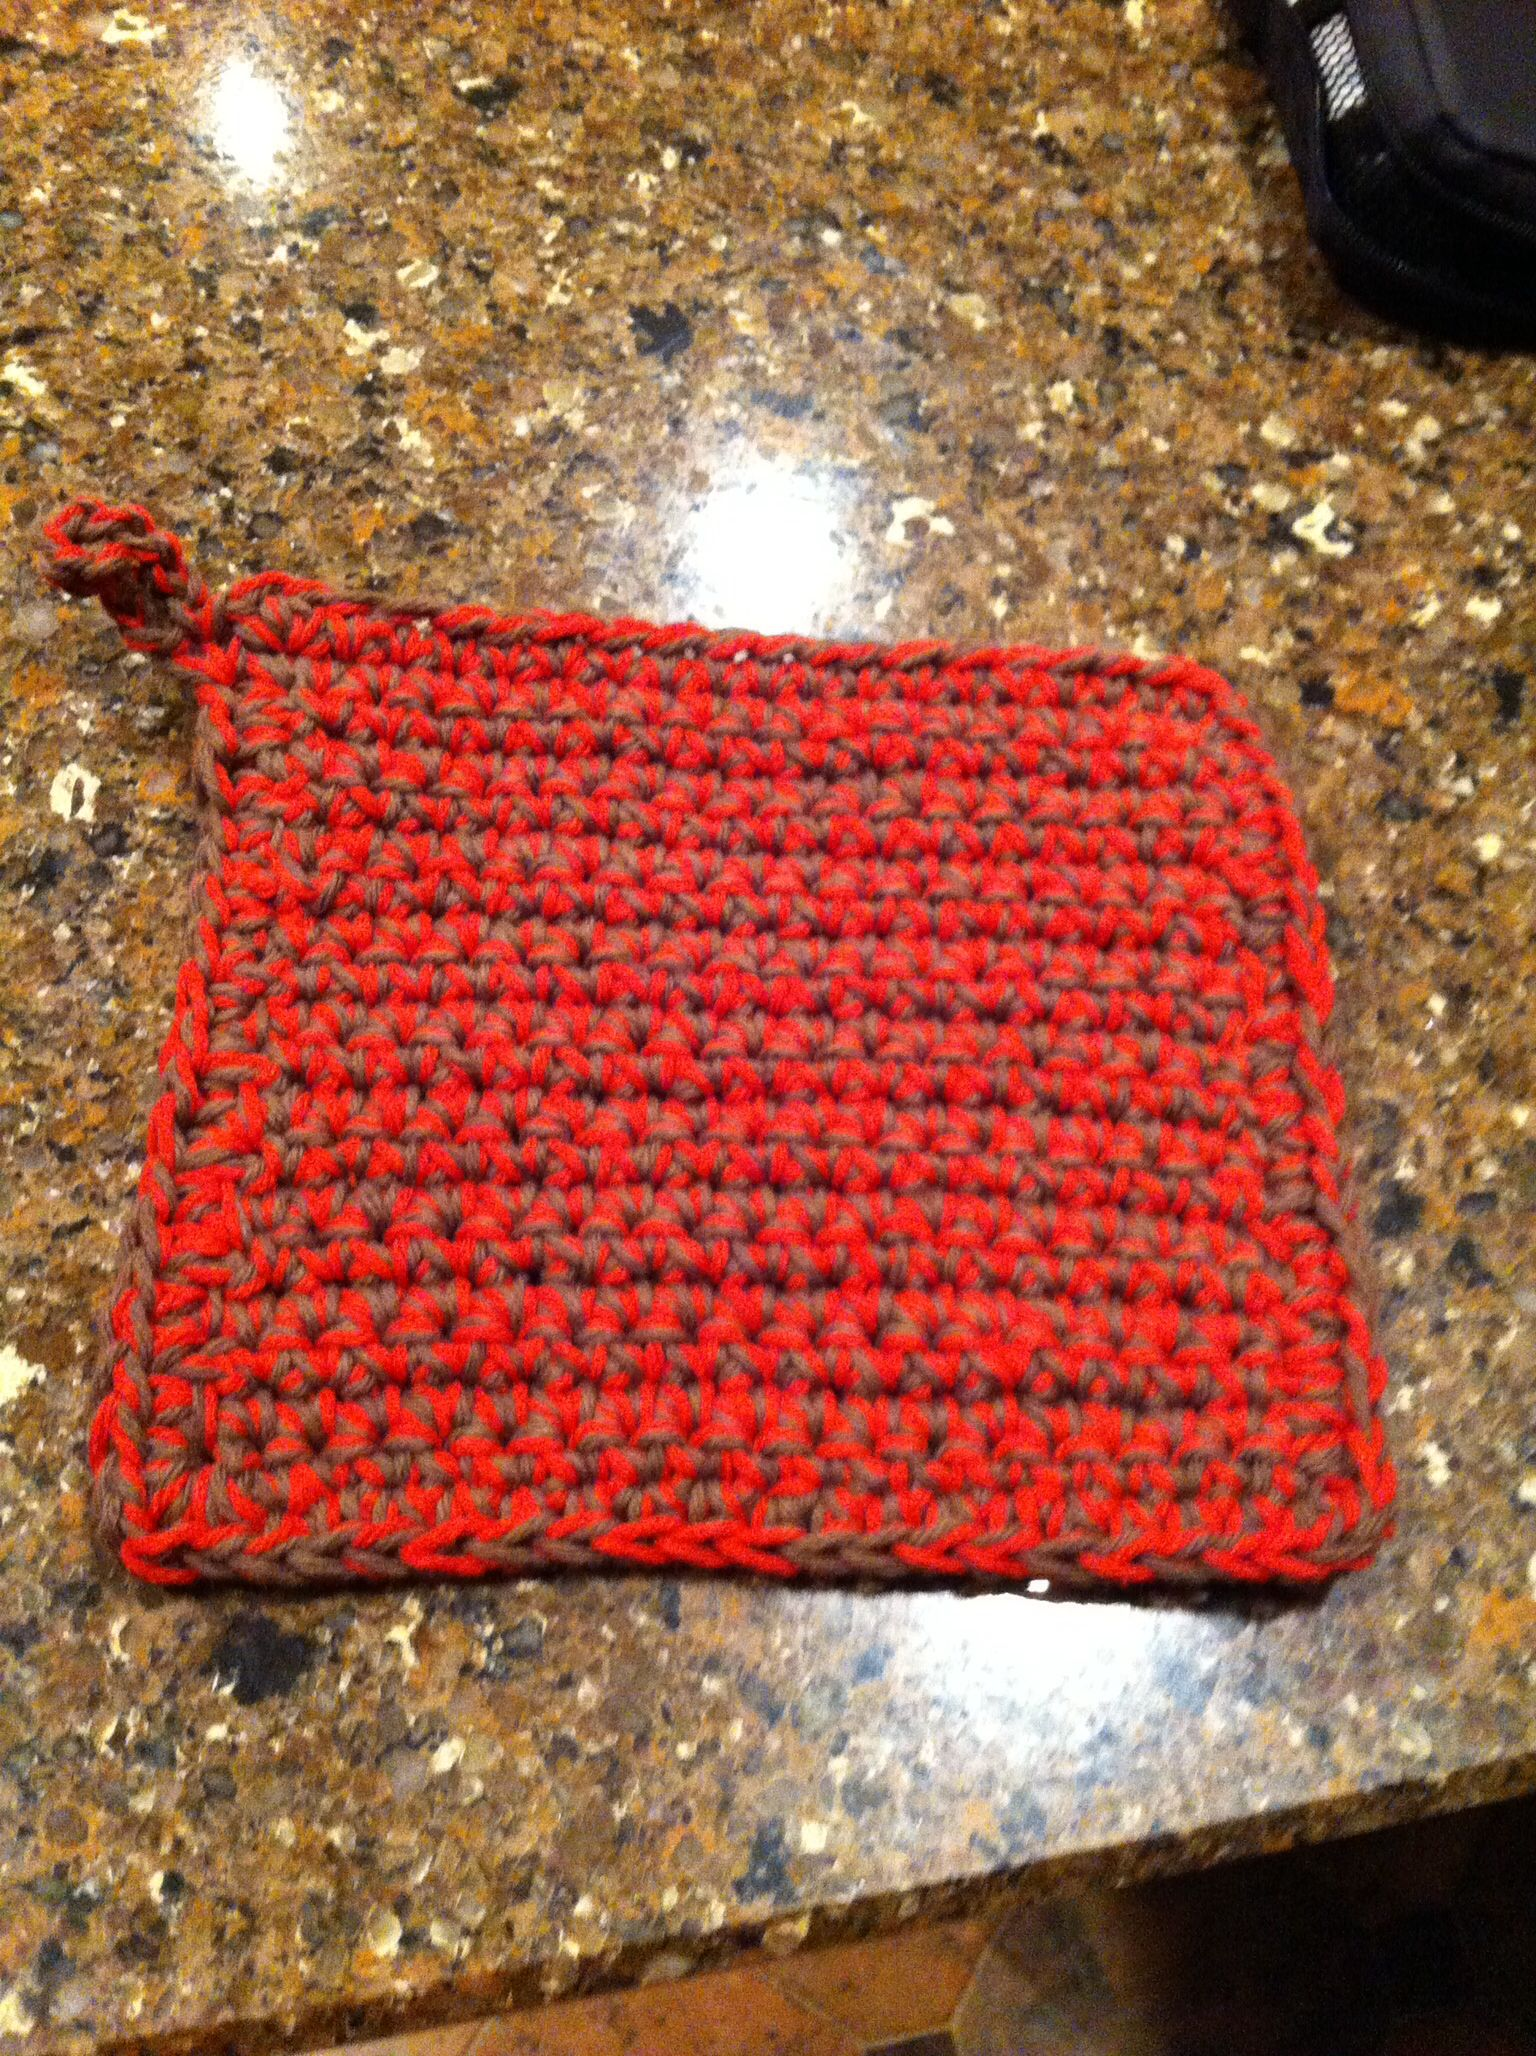 potholder hot plate made in country red and medium brown cotton